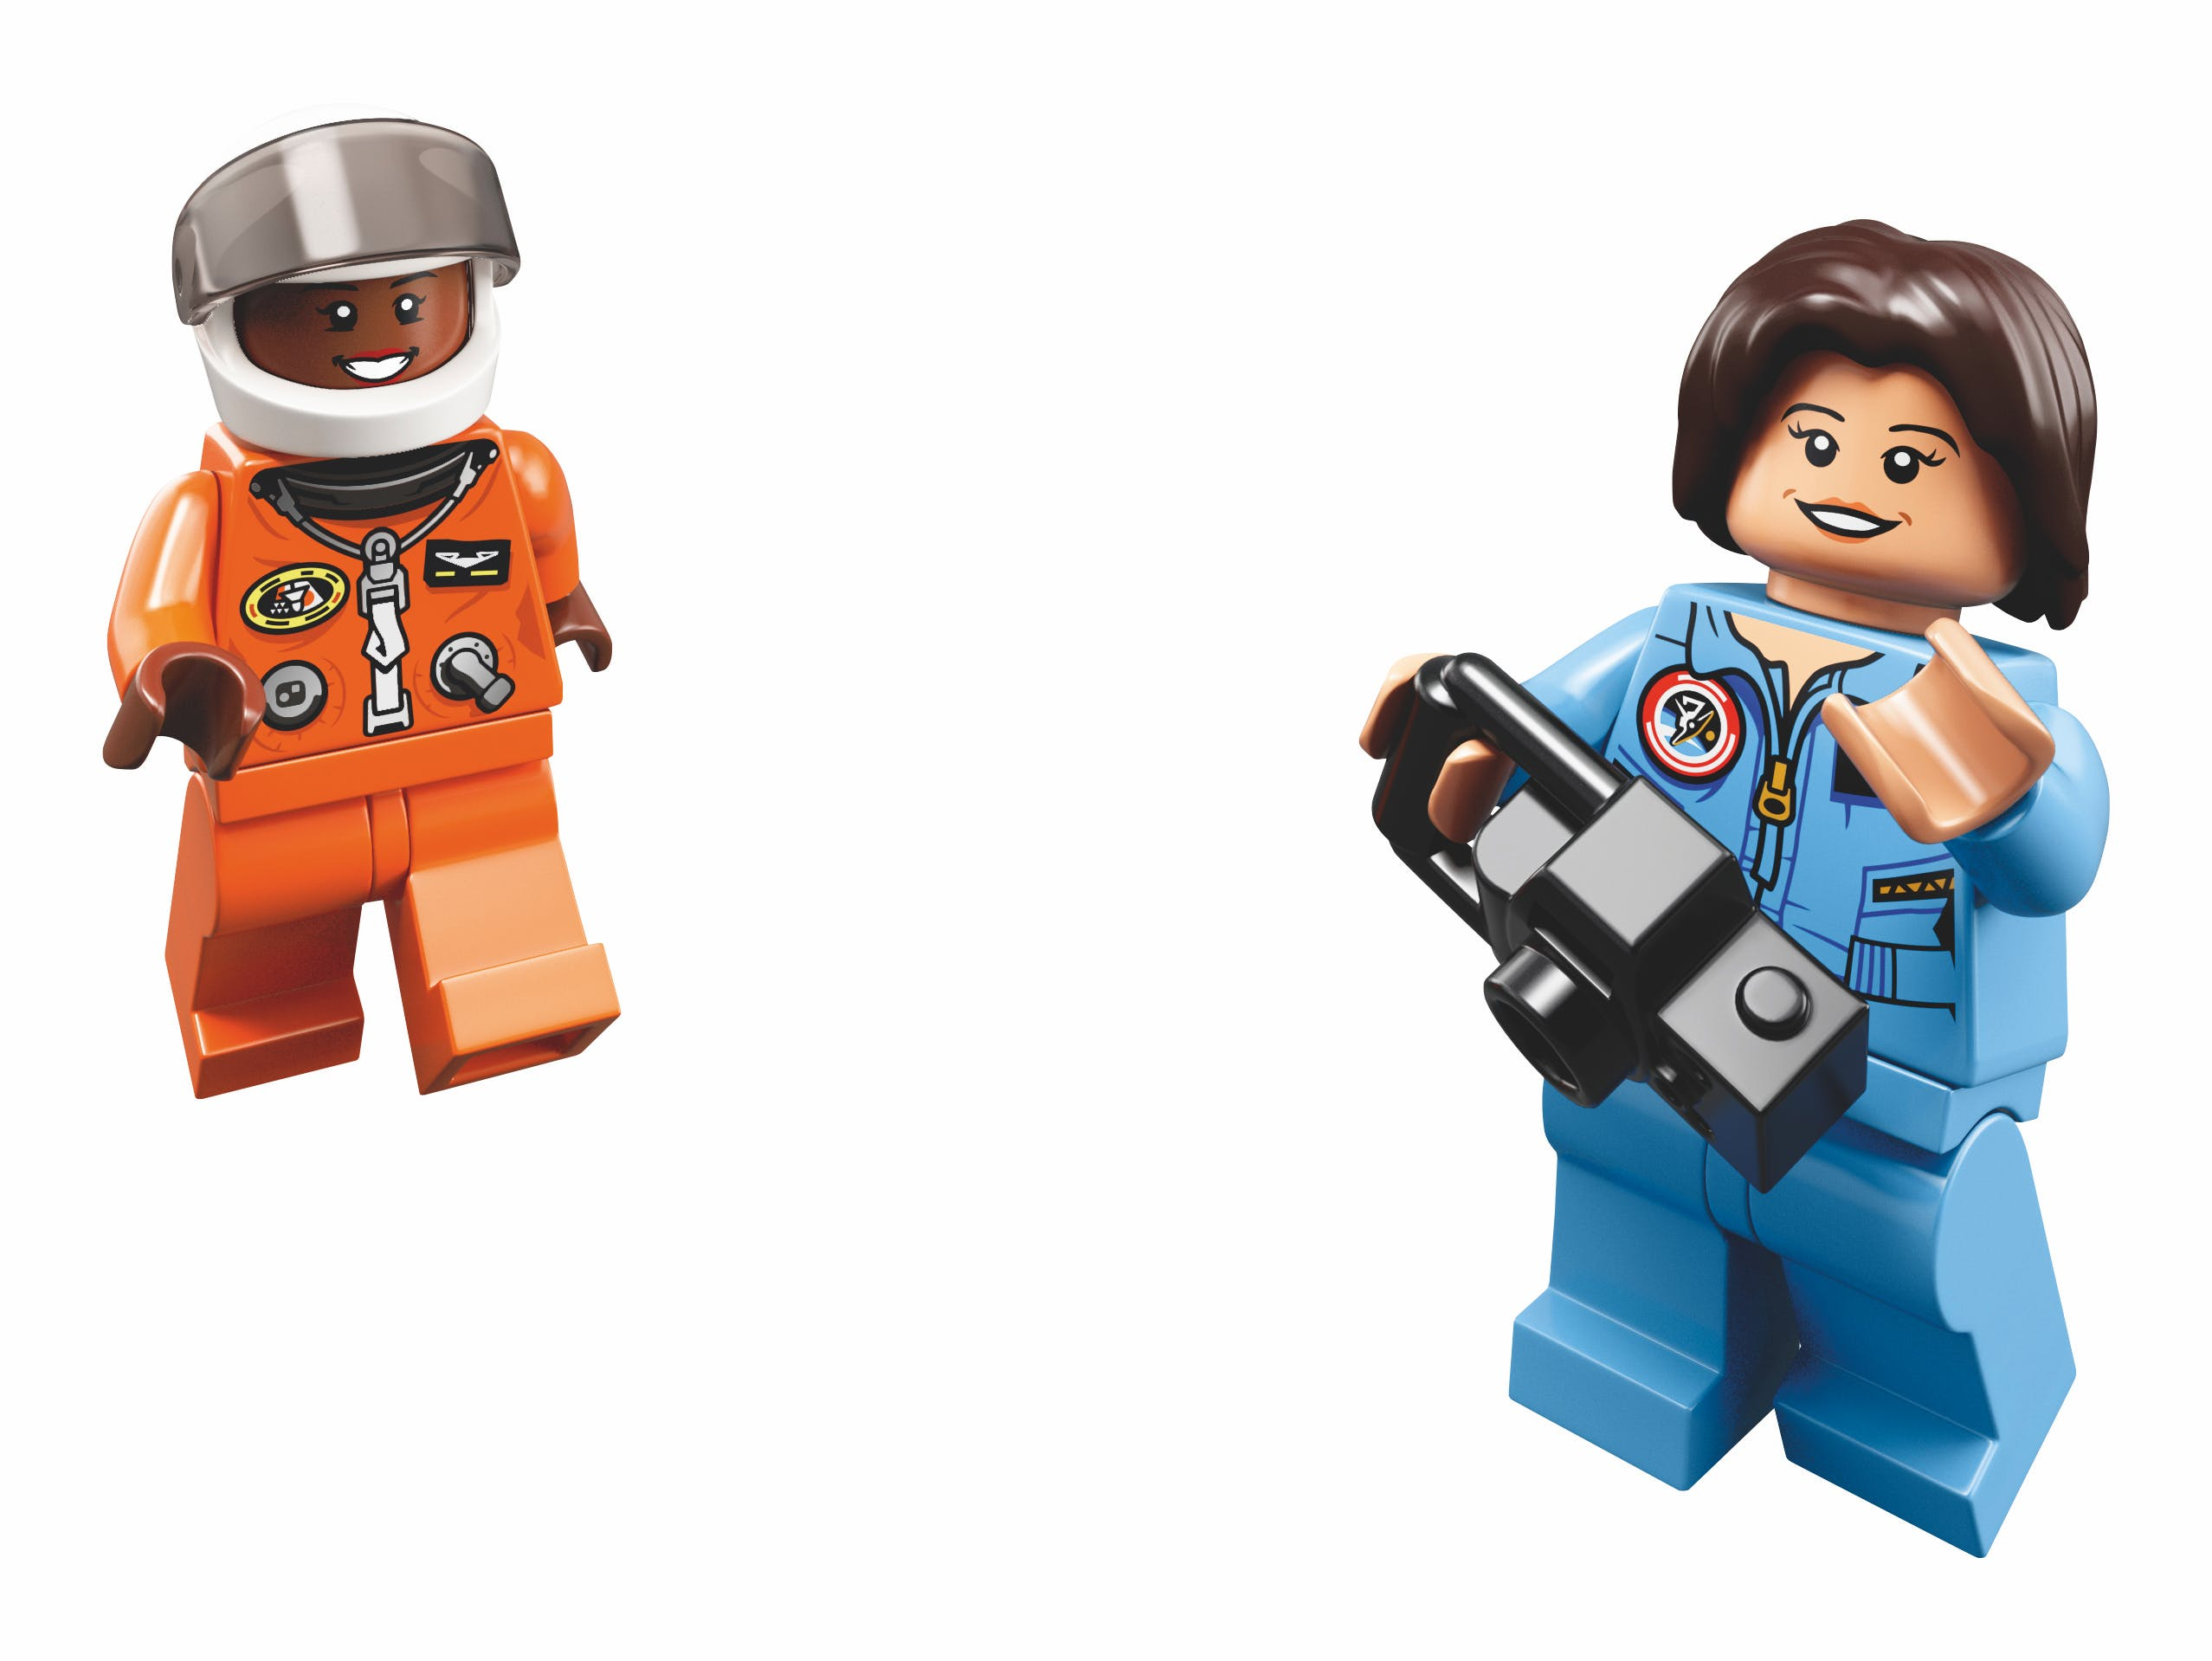 Figurines of pioneering women of STEM hits shelves next month.